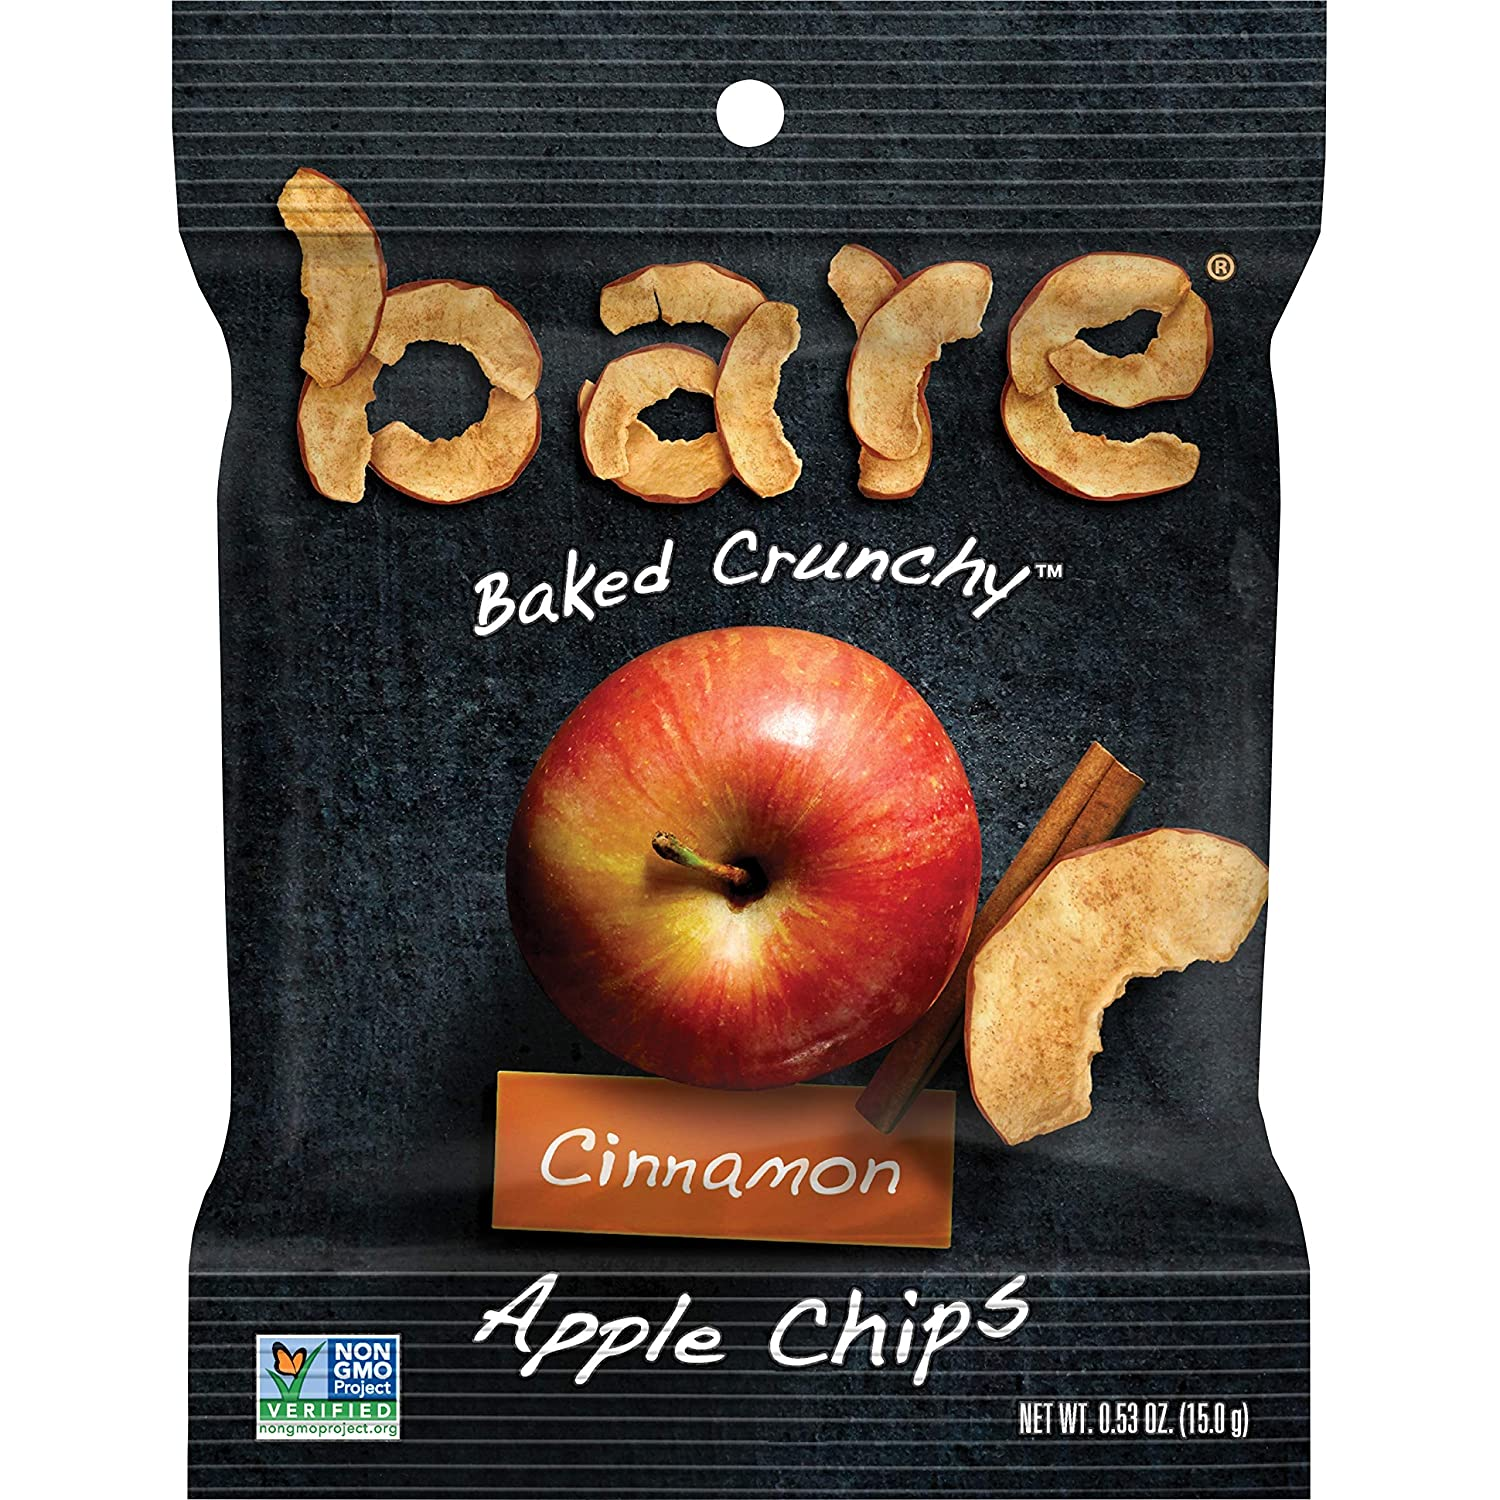 Bare Baked Crunchy Apple Chips, Cinnamon, Gluten Free, 0.53 Ounce Bag, 24 Count